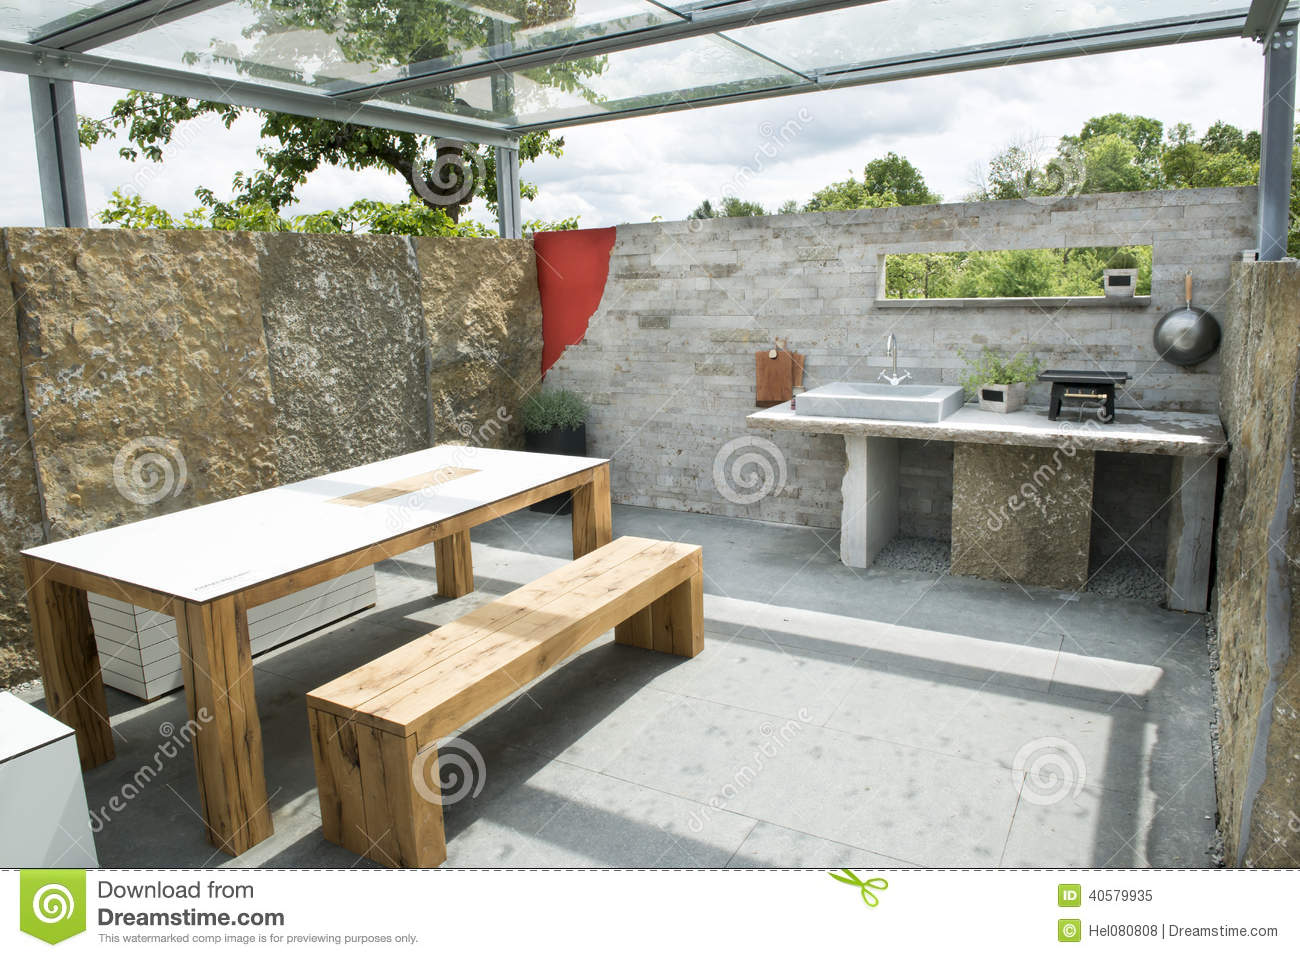 Outdoor Kitchen Stock Image Image Of Table Stones Plants